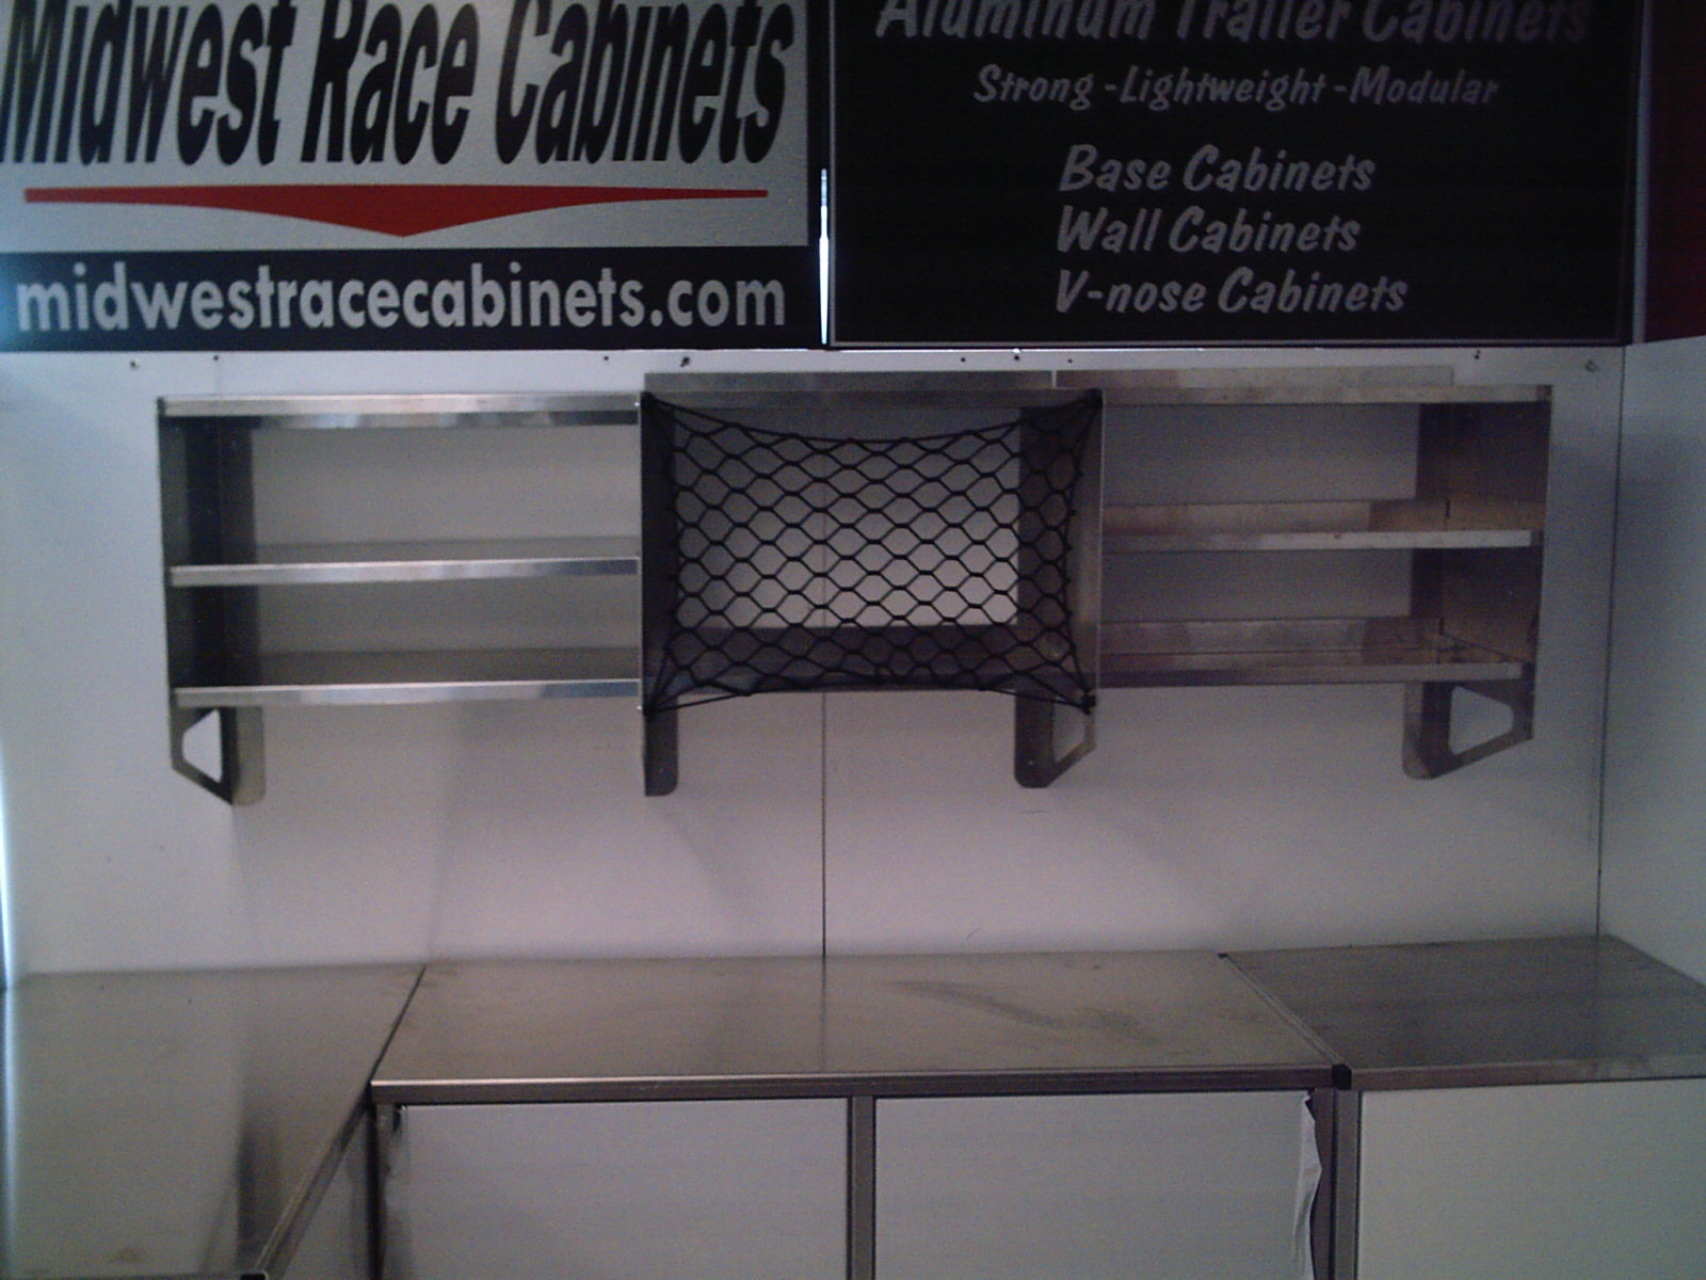 Super Shelf Midwest Race Cabinets